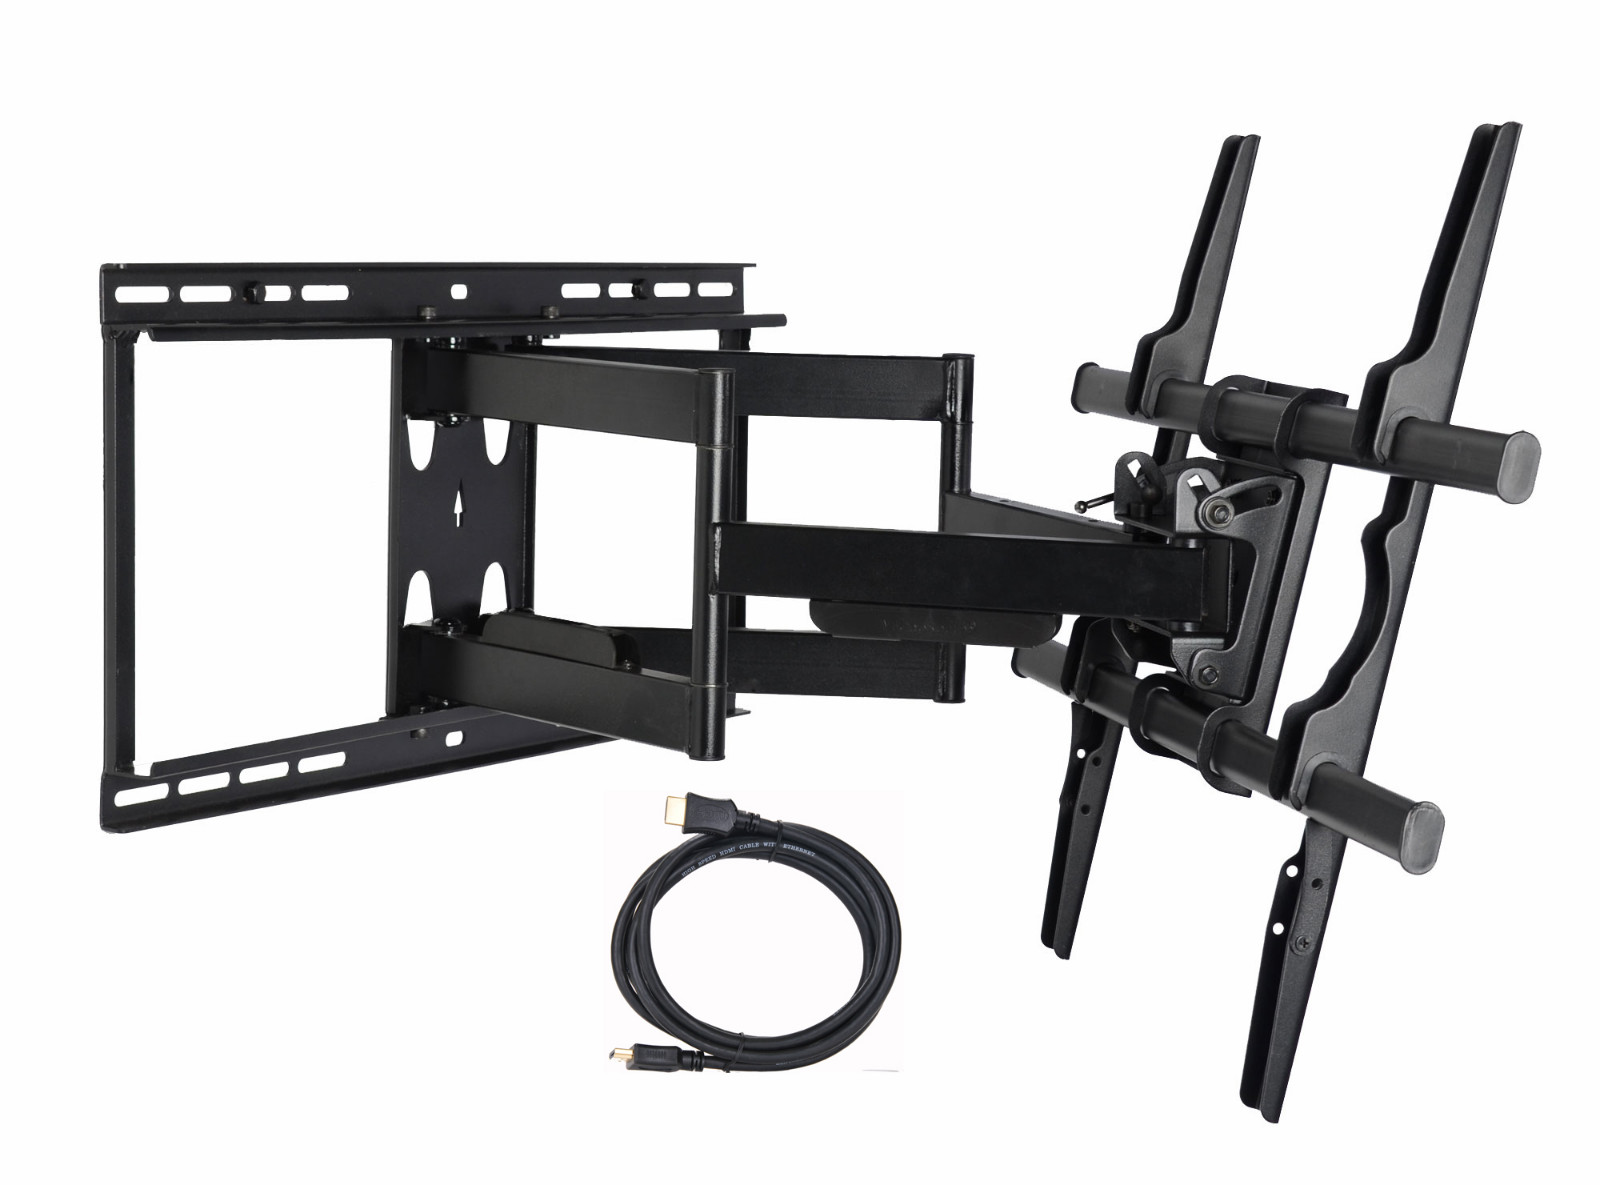 One of the best TV mounting brackets is the VideoSecu full motion TV mount.